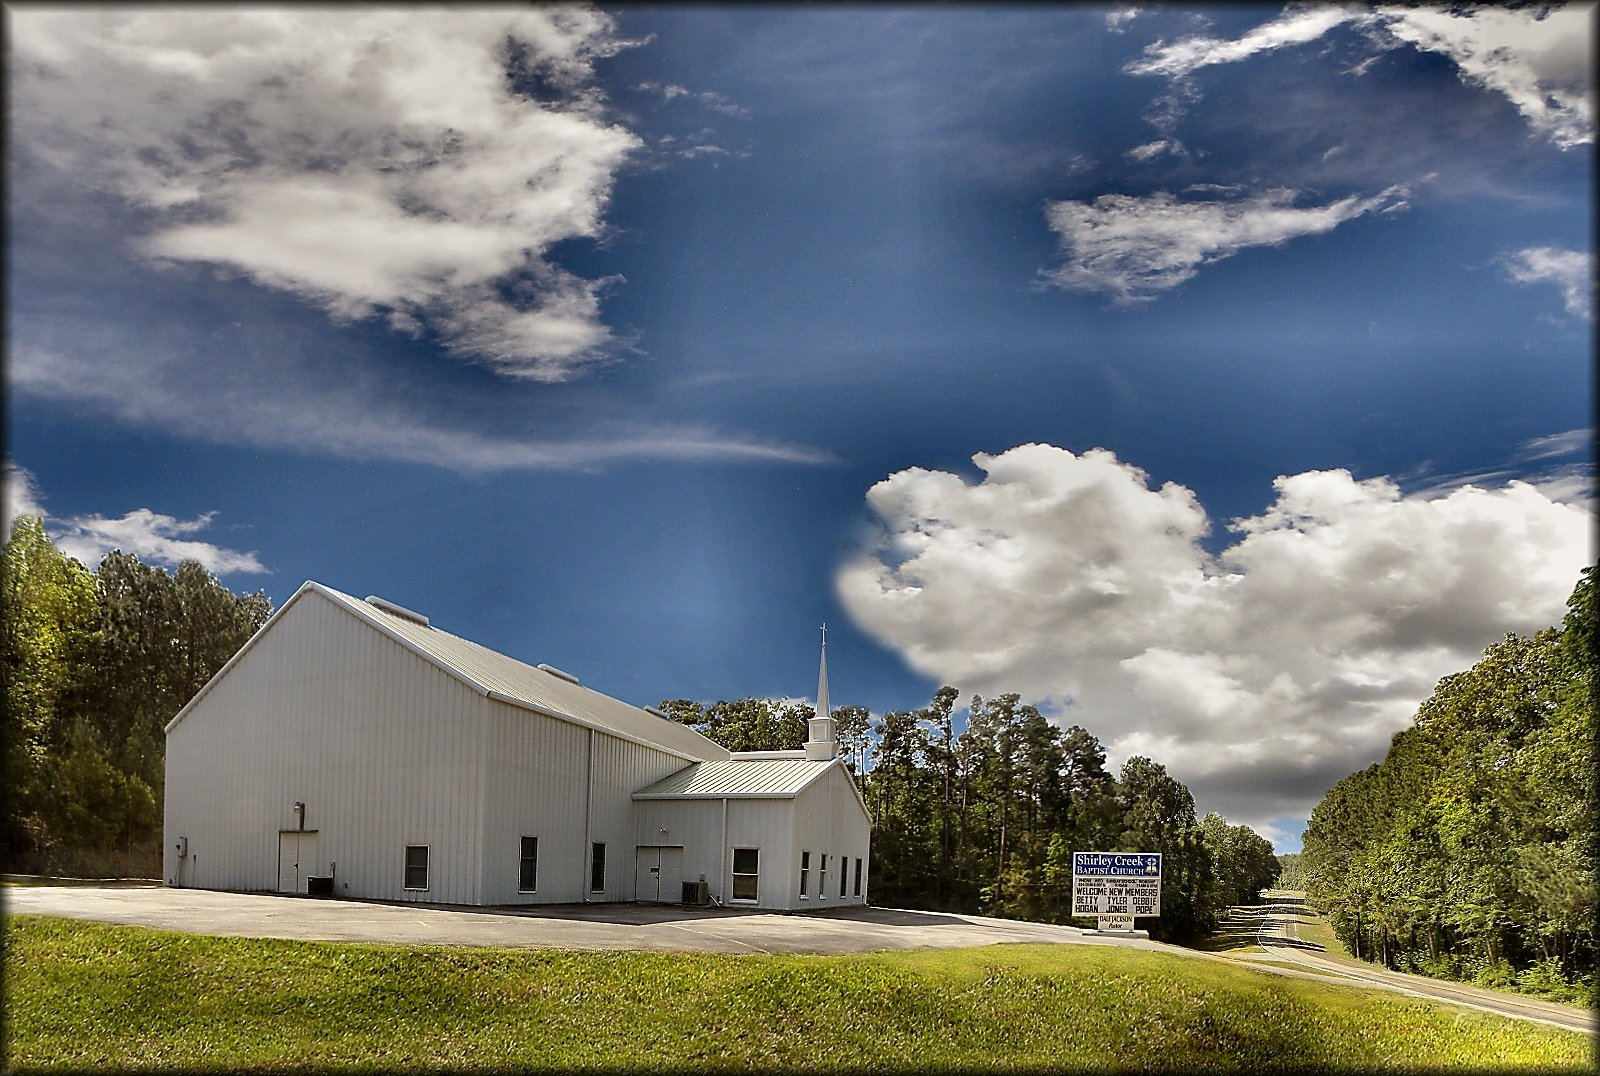 Shirley Creek Baptist Church at Etoile, Texas in Historic Nacogdoches County